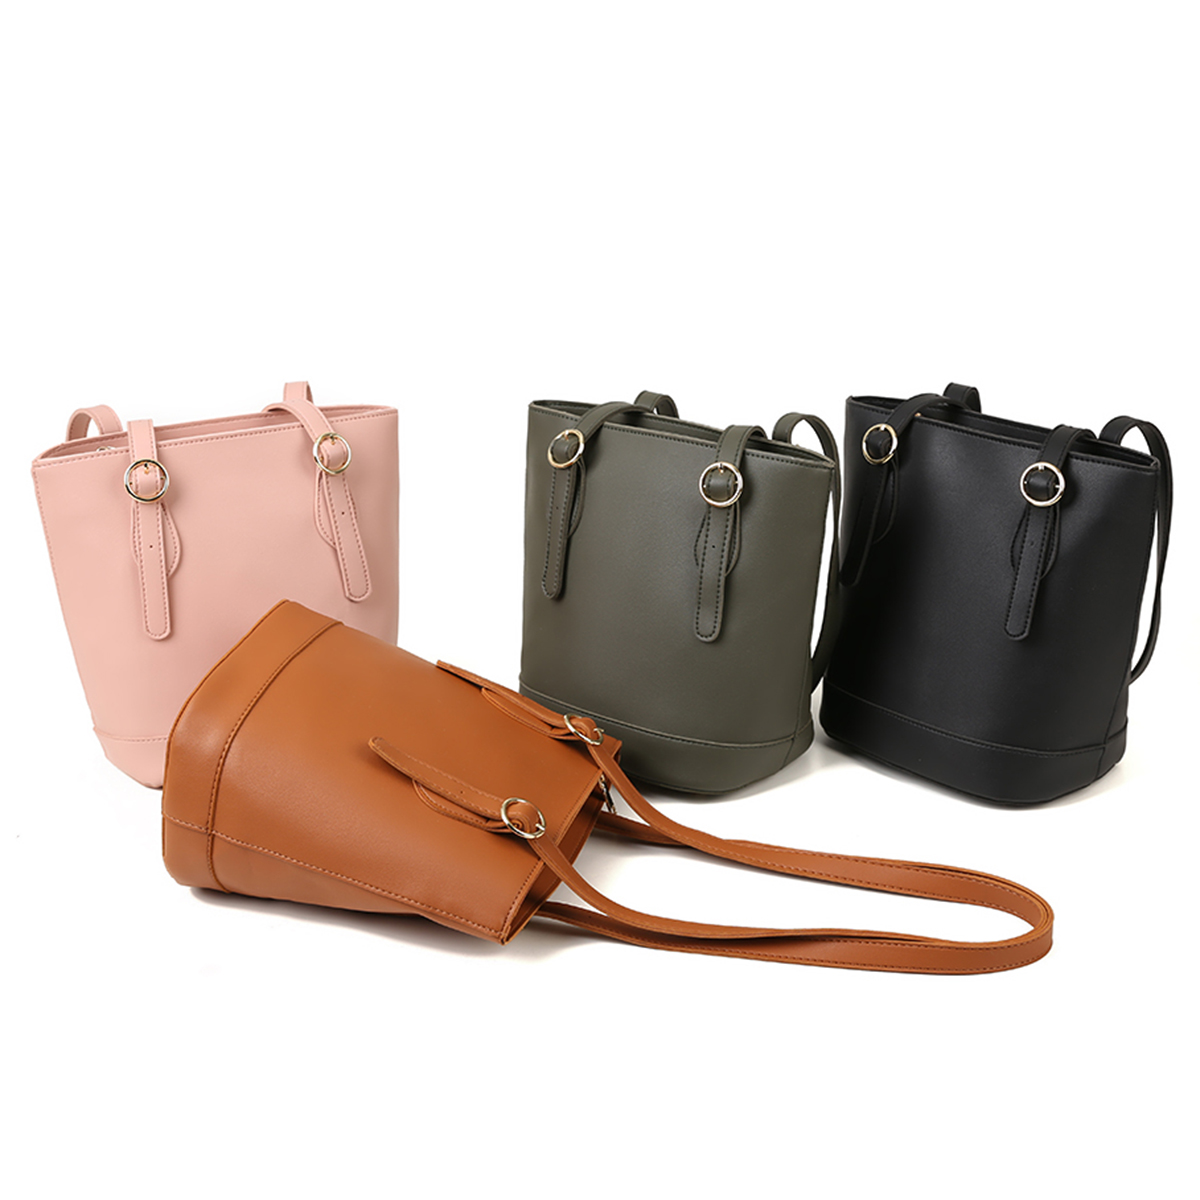 Simple Fashion Women Leather Handbags Big Women Bag High Quality Casual Female Bags Trunk Tote Shoulder Bag Ladies Large